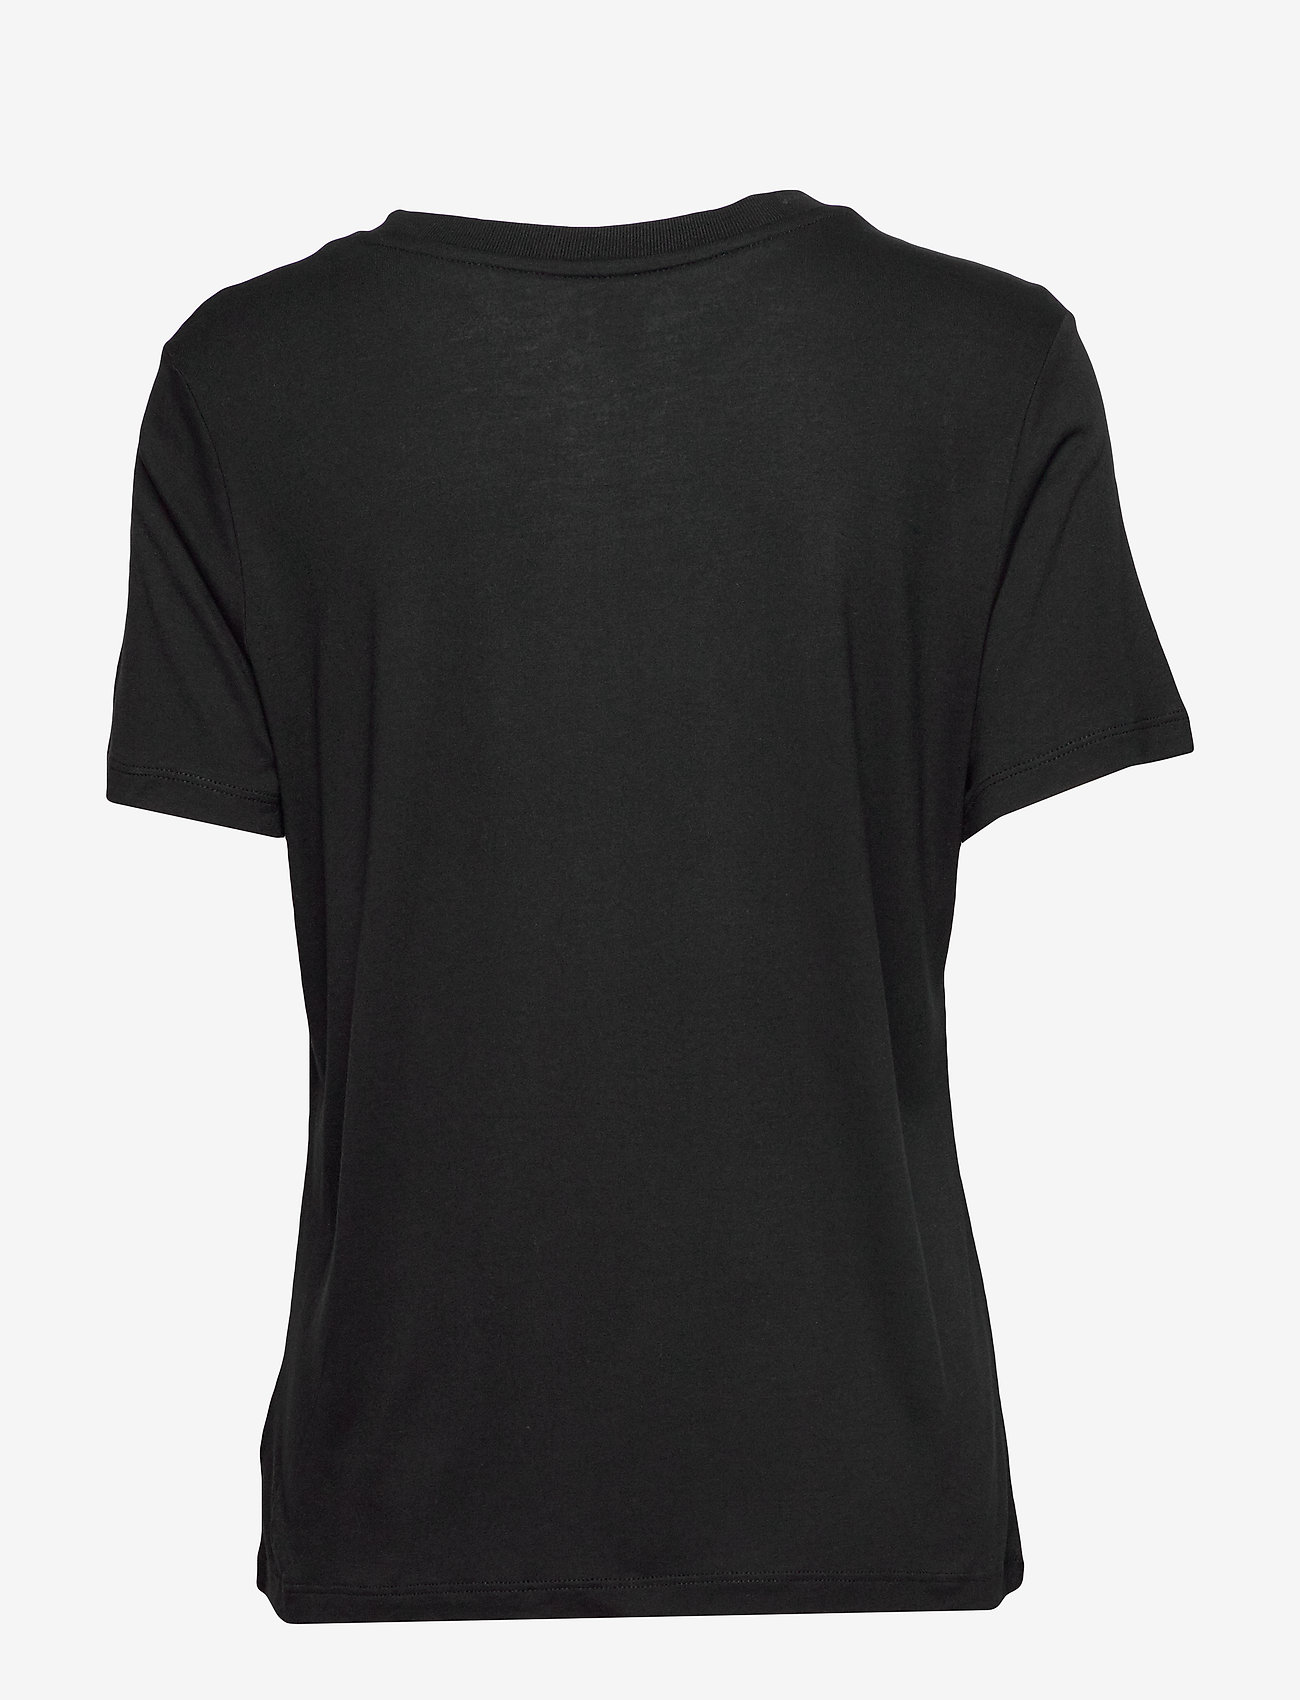 Lee Jeans - RELAXED FIT TEE - t-shirts - black - 1